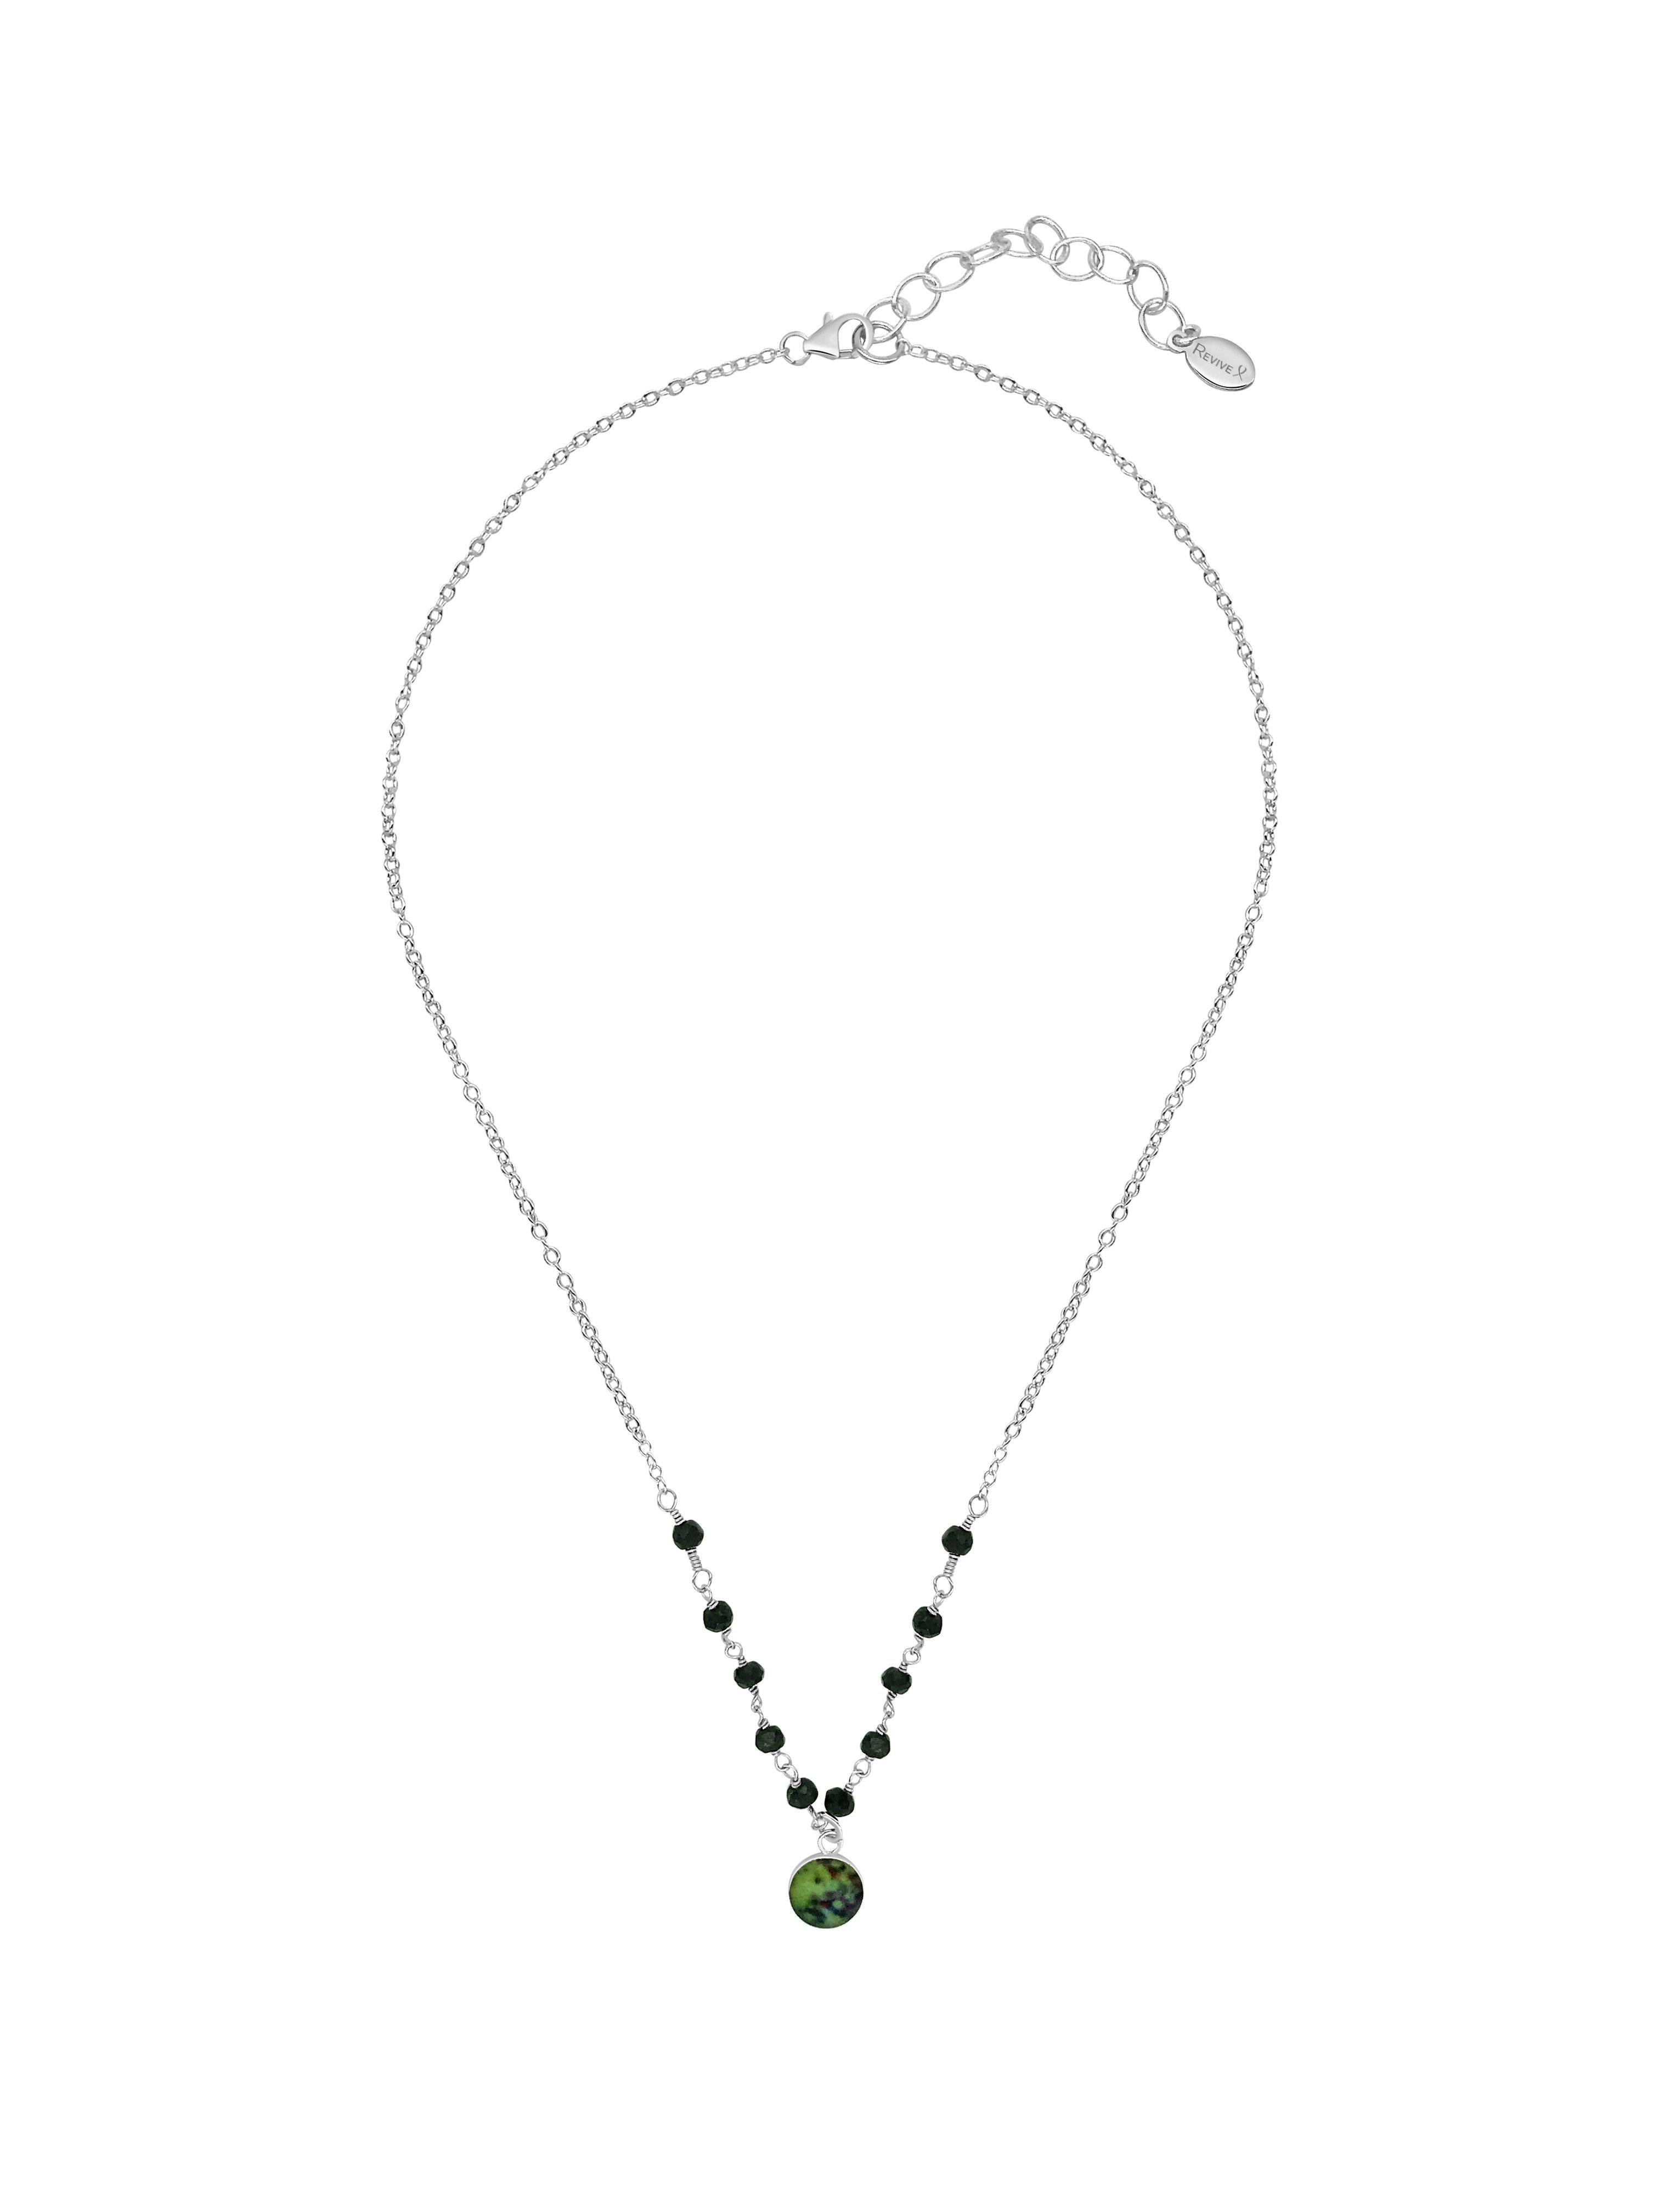 16 inch to 18 inch adjustable sterling silver chain with small black spinel stones across the front and a small round pendant hanging from the center of a melanoma cell image in resin